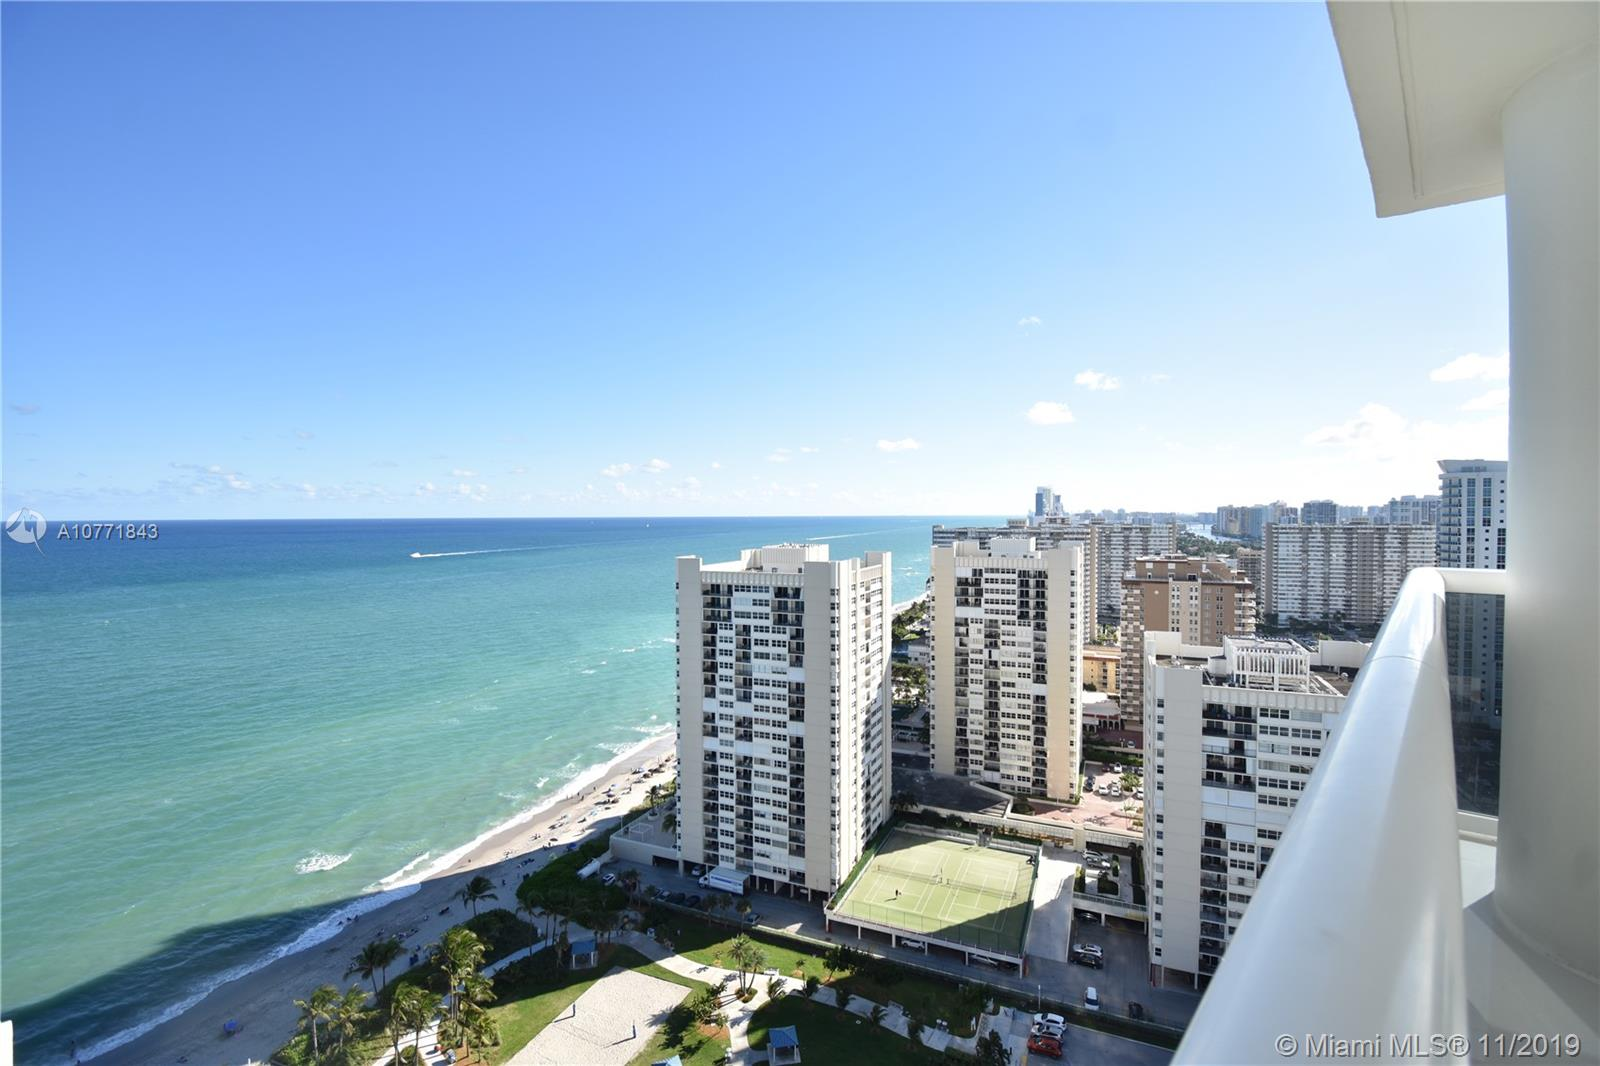 2019 Designer remodeled condo with infinity south east views, corner wrap around balcony with sunrise & sunset views, private terrace off the master bedroom, costume features are: 48x48 white porcelain floors indoor & outdoor, white mica kitchen with double storage at island, oversize water fall quartz counters, Viking appliances, quartz built in sink at kitchen and master bathroom, Brizo bathroom fixtures, Axor bathroom fixtures in master bathroom, costume glass doors in bathrooms, dropdown ceilings with high hats throughout, motorized shades, designer wall paper, oversize master closet, Italian designer interior doors,  linear ac  vents throughout the property. ALL BRAND NEW. Located on a  5 star resort amenities 50,000 sq.ft spa & fitness center, 7  pools,  concierge and beach service.